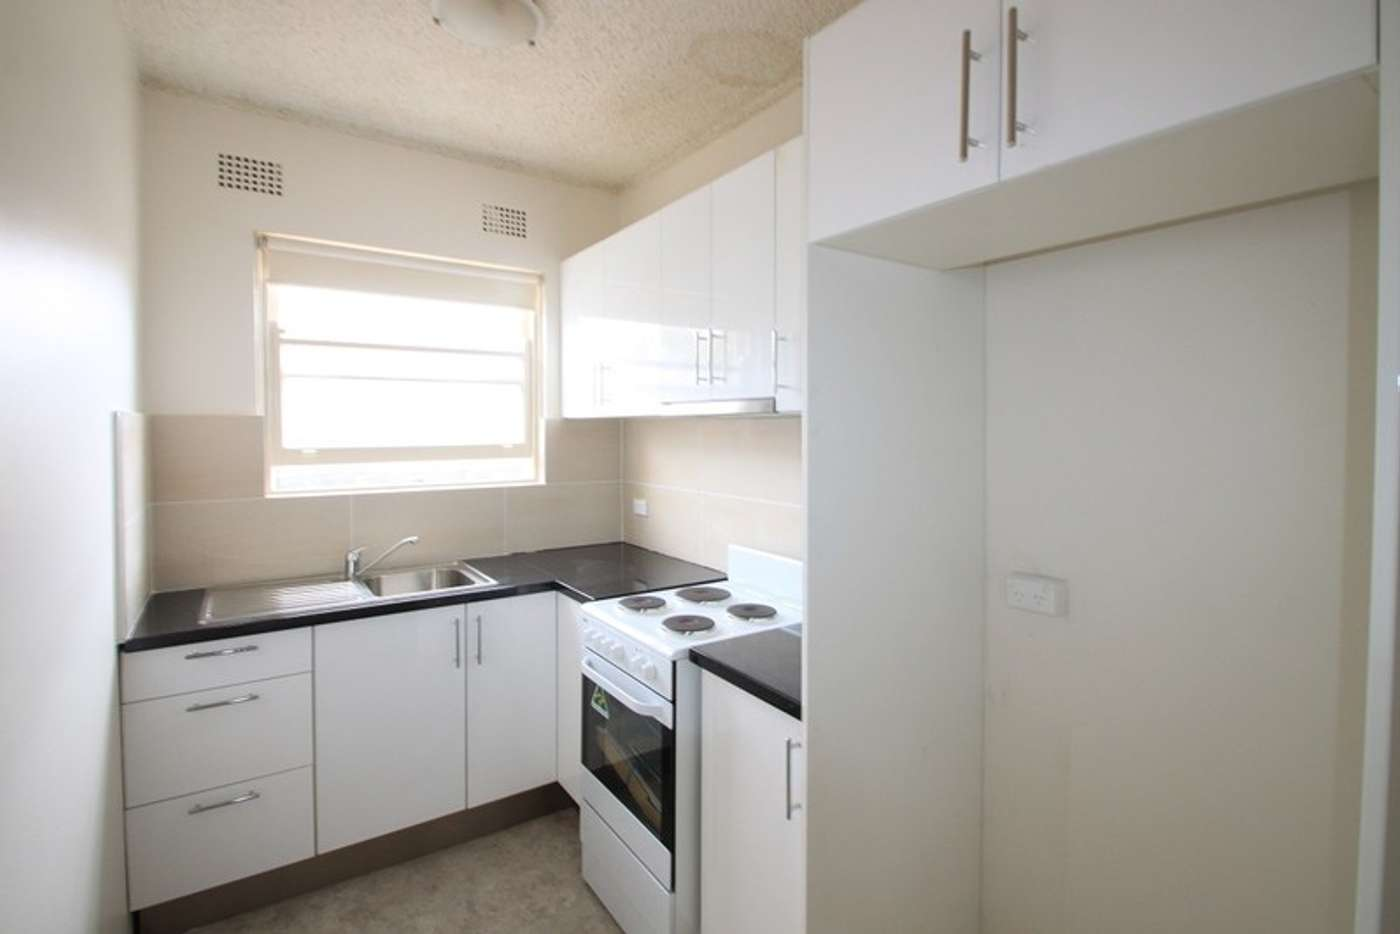 Sixth view of Homely apartment listing, 3/16 Myee Street, Lakemba NSW 2195